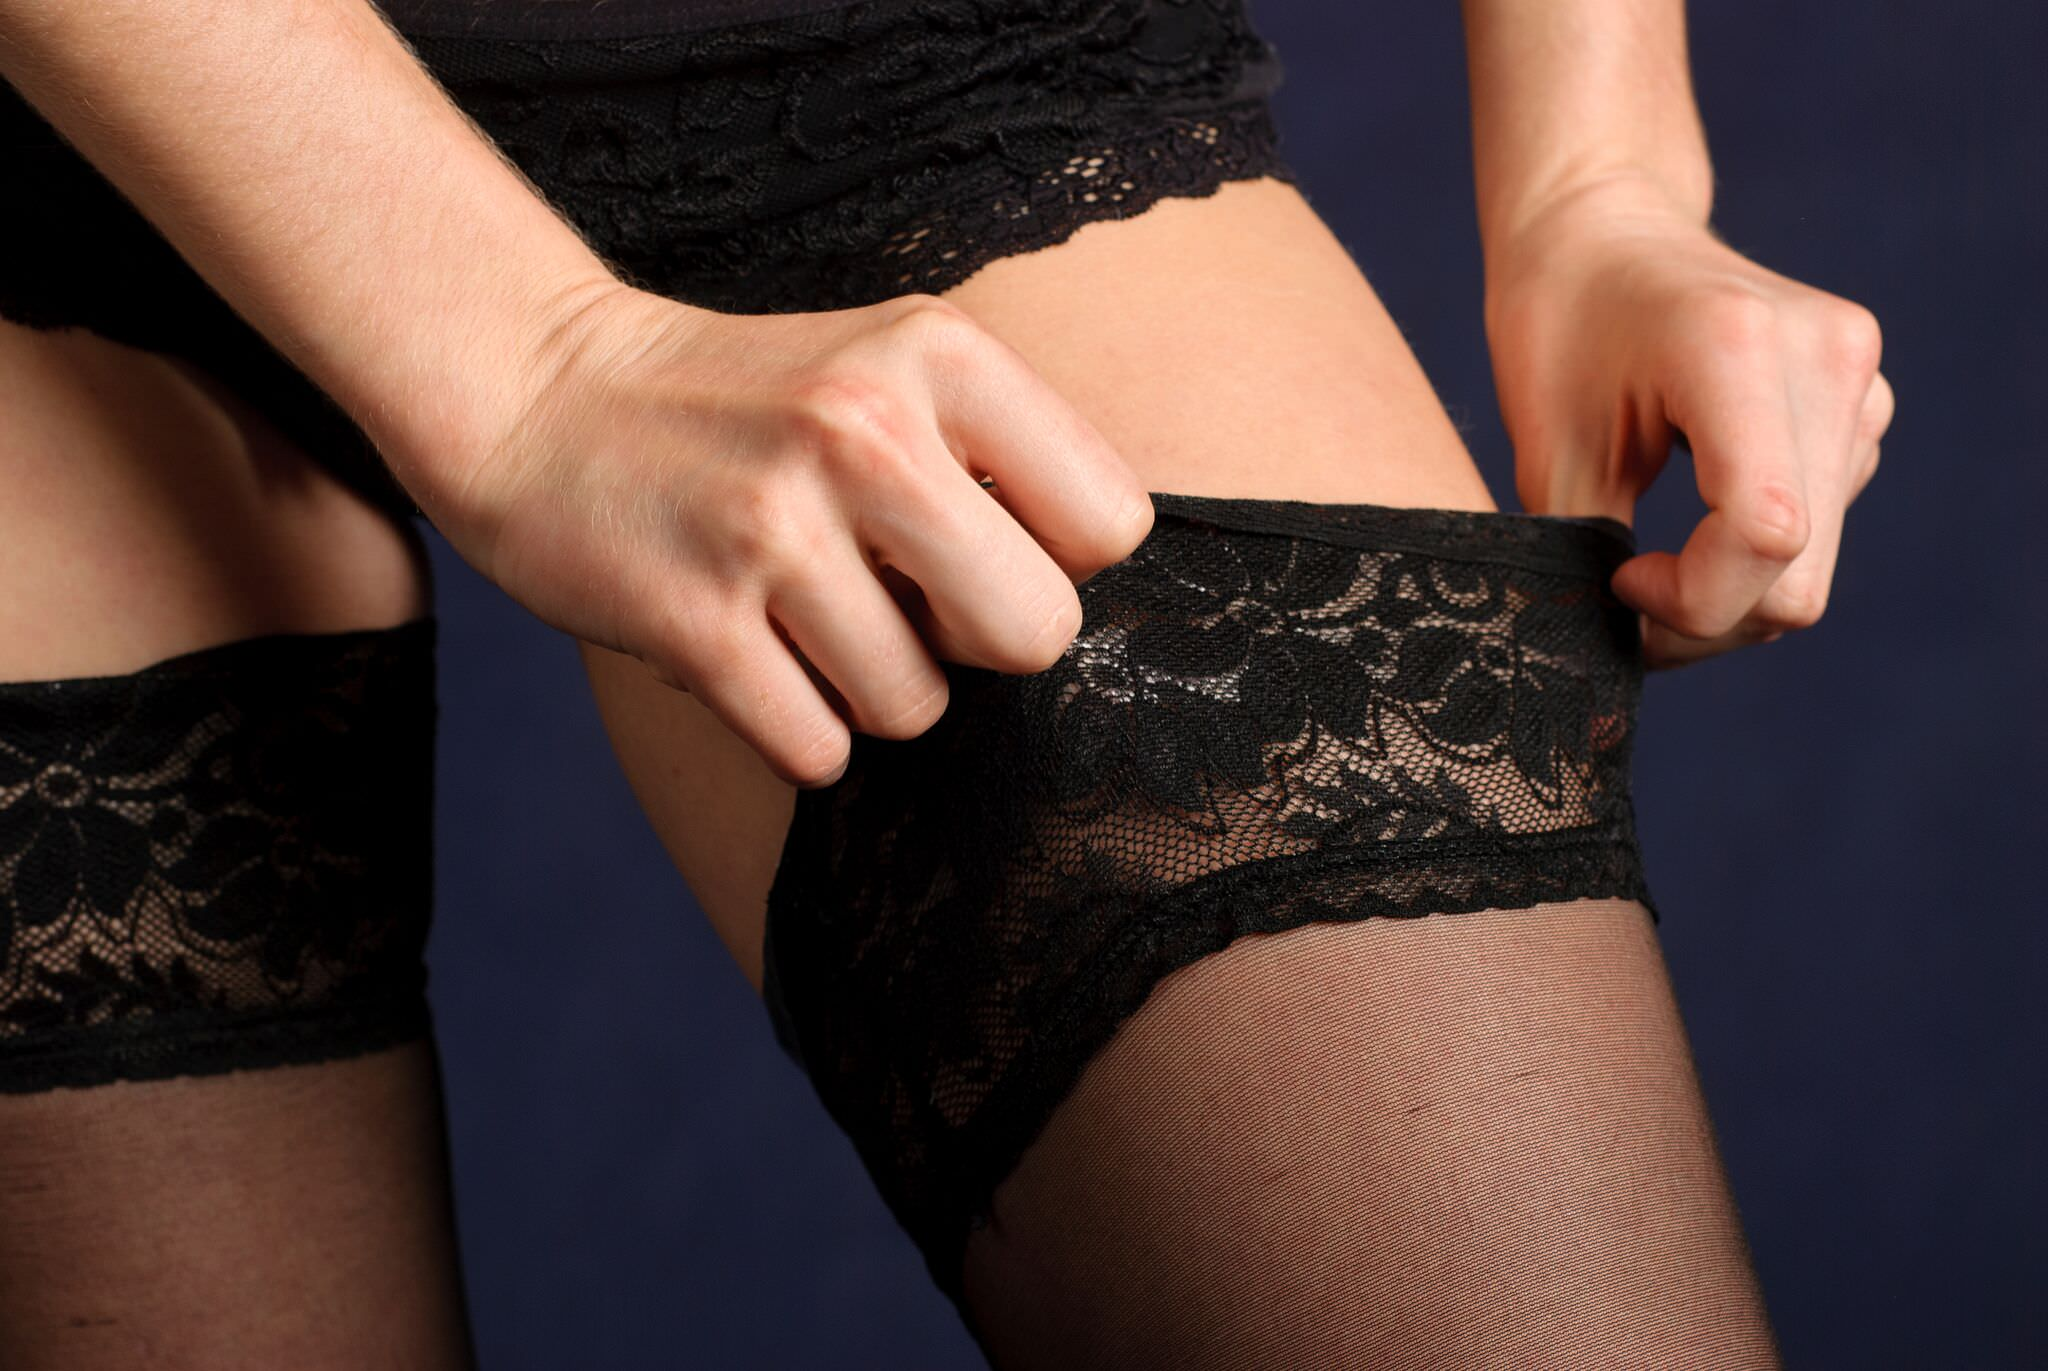 The Tactile Pleasure of Nylons Goes Both Ways